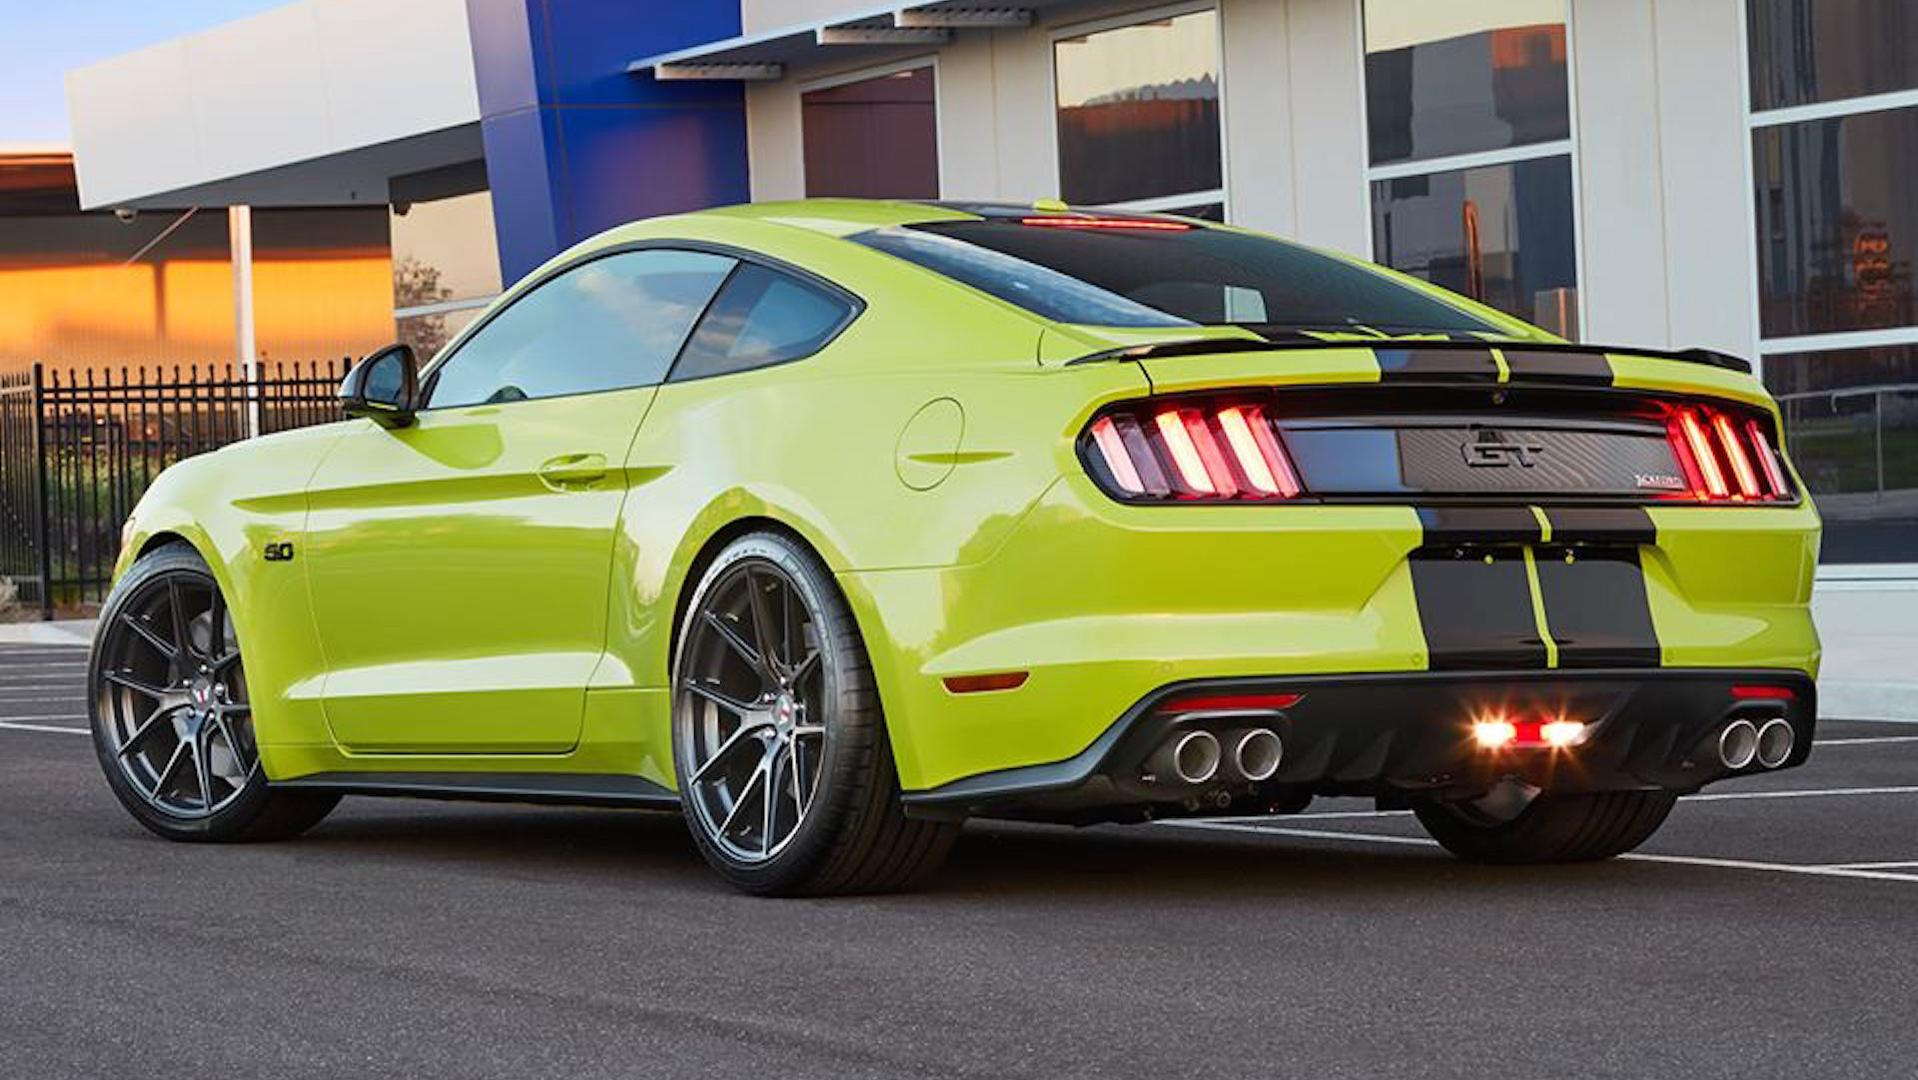 Tuned Mustang Gt Ticks All The Right Boxes And It Could Be Yours